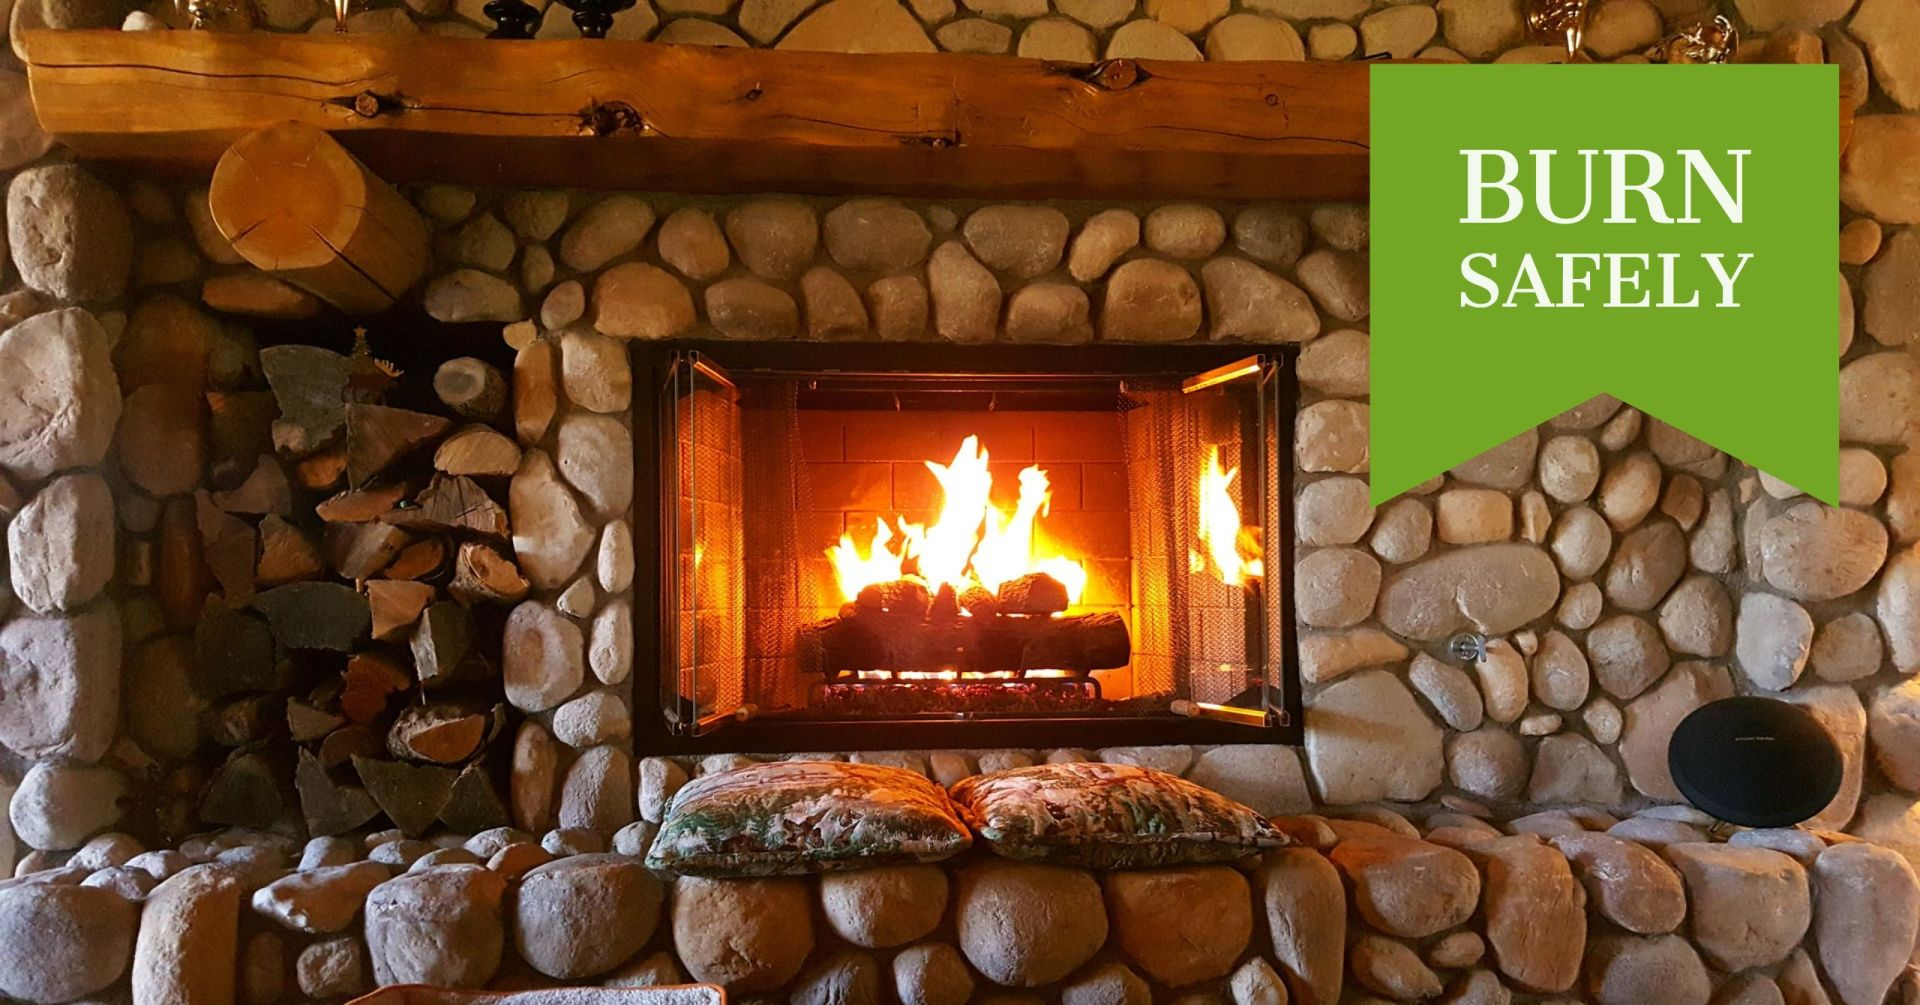 Colin's 1 Minute Monday – Episode 4 – Fireplace Safety